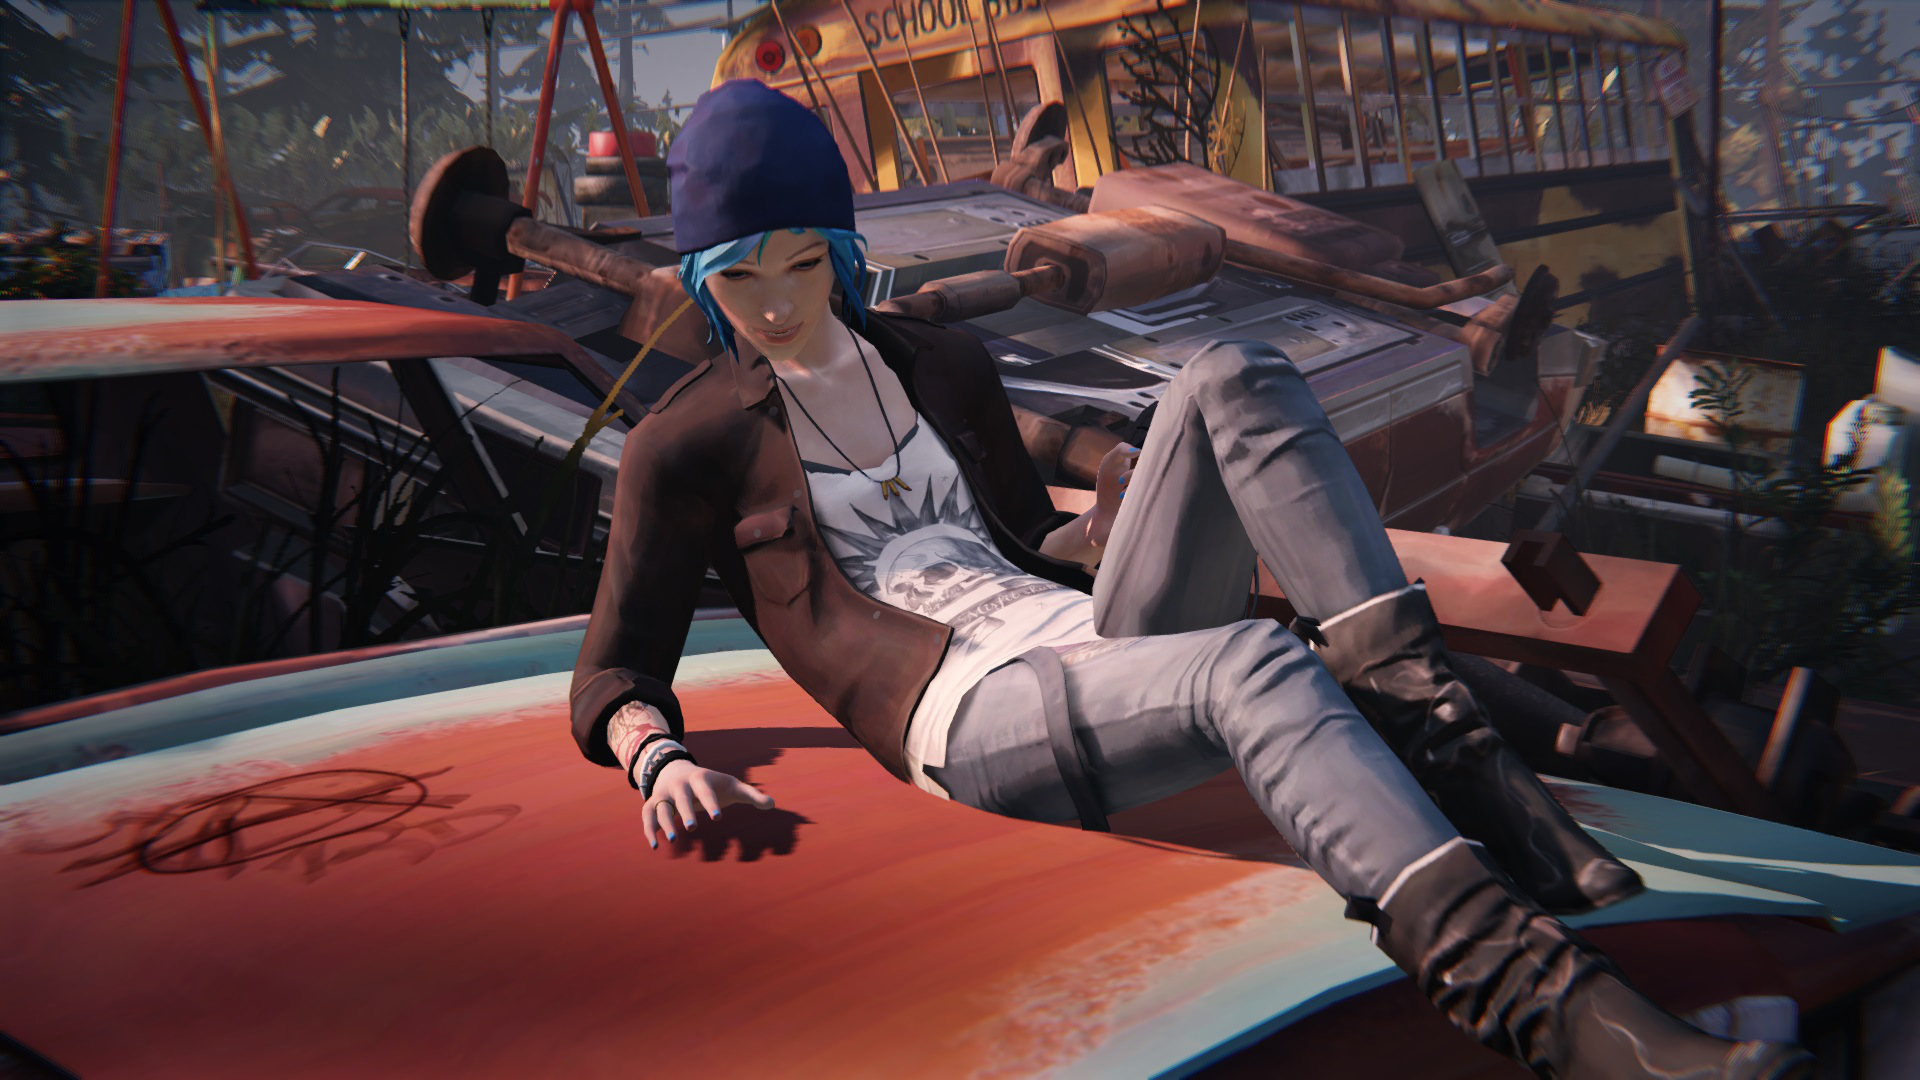 Life Is Strange 2 Wallpaper: Life Is Strange Episode 2: Out Of Time Review (Xbox One